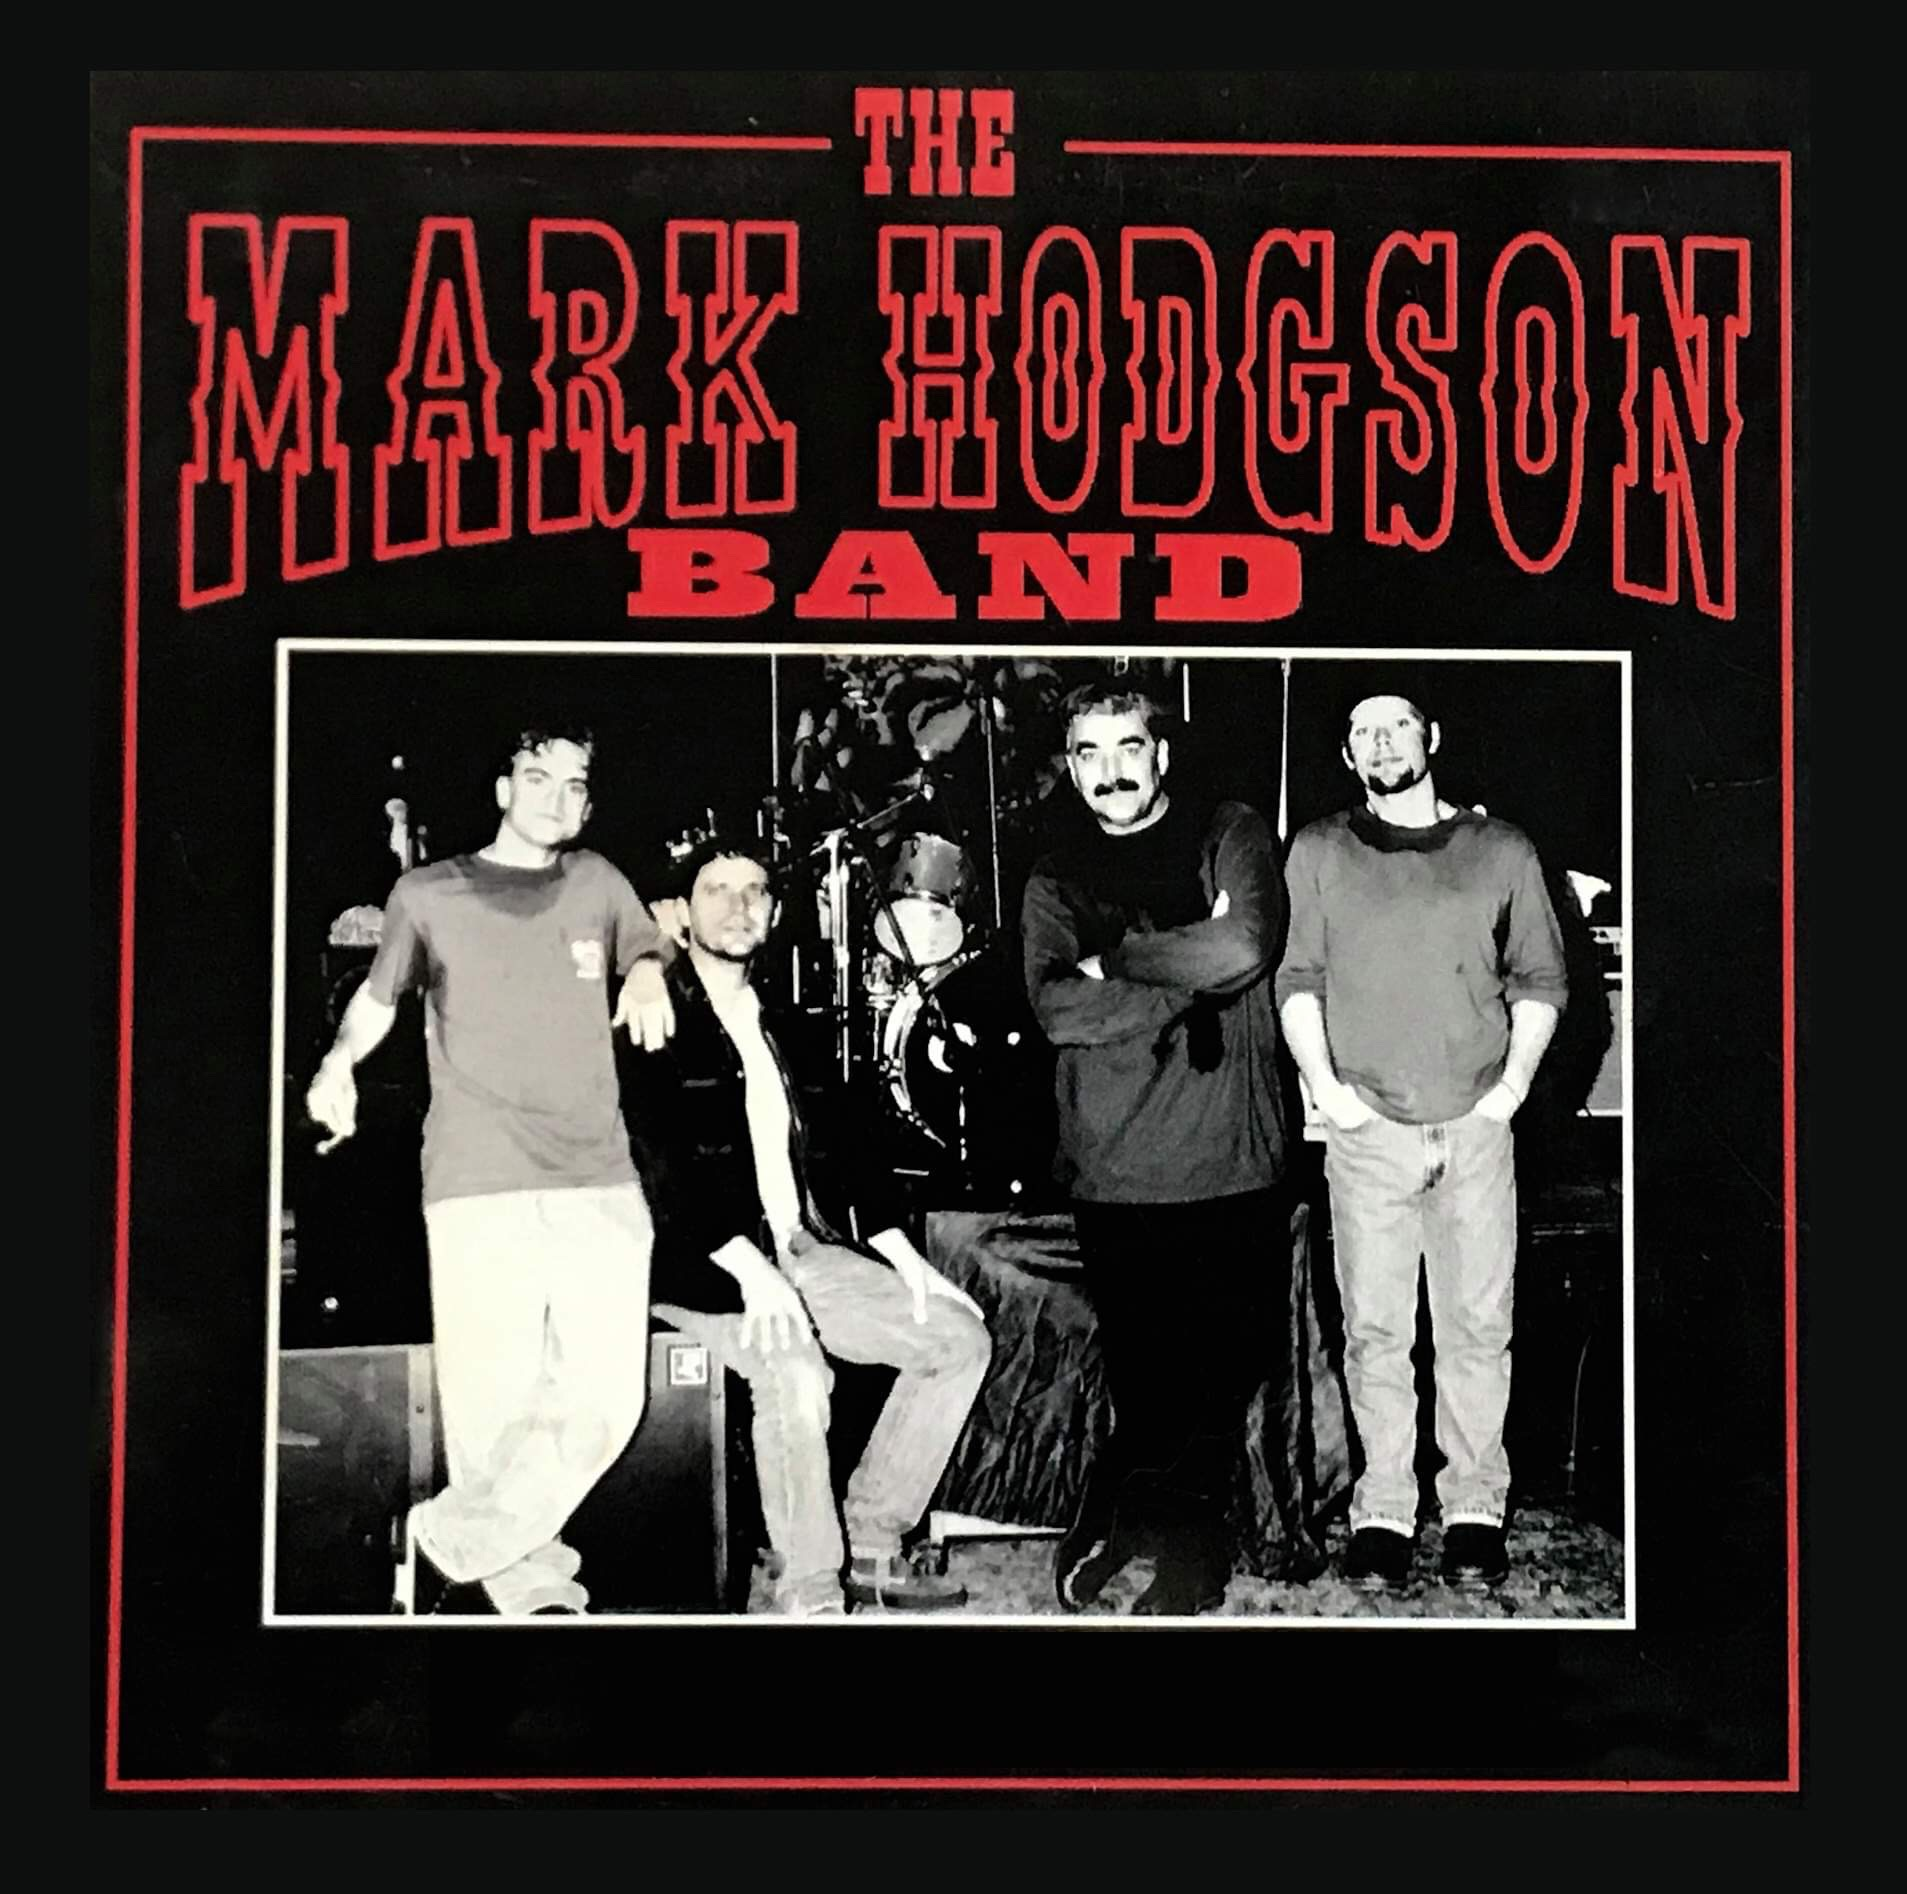 Mark Hodgson Band Reunion